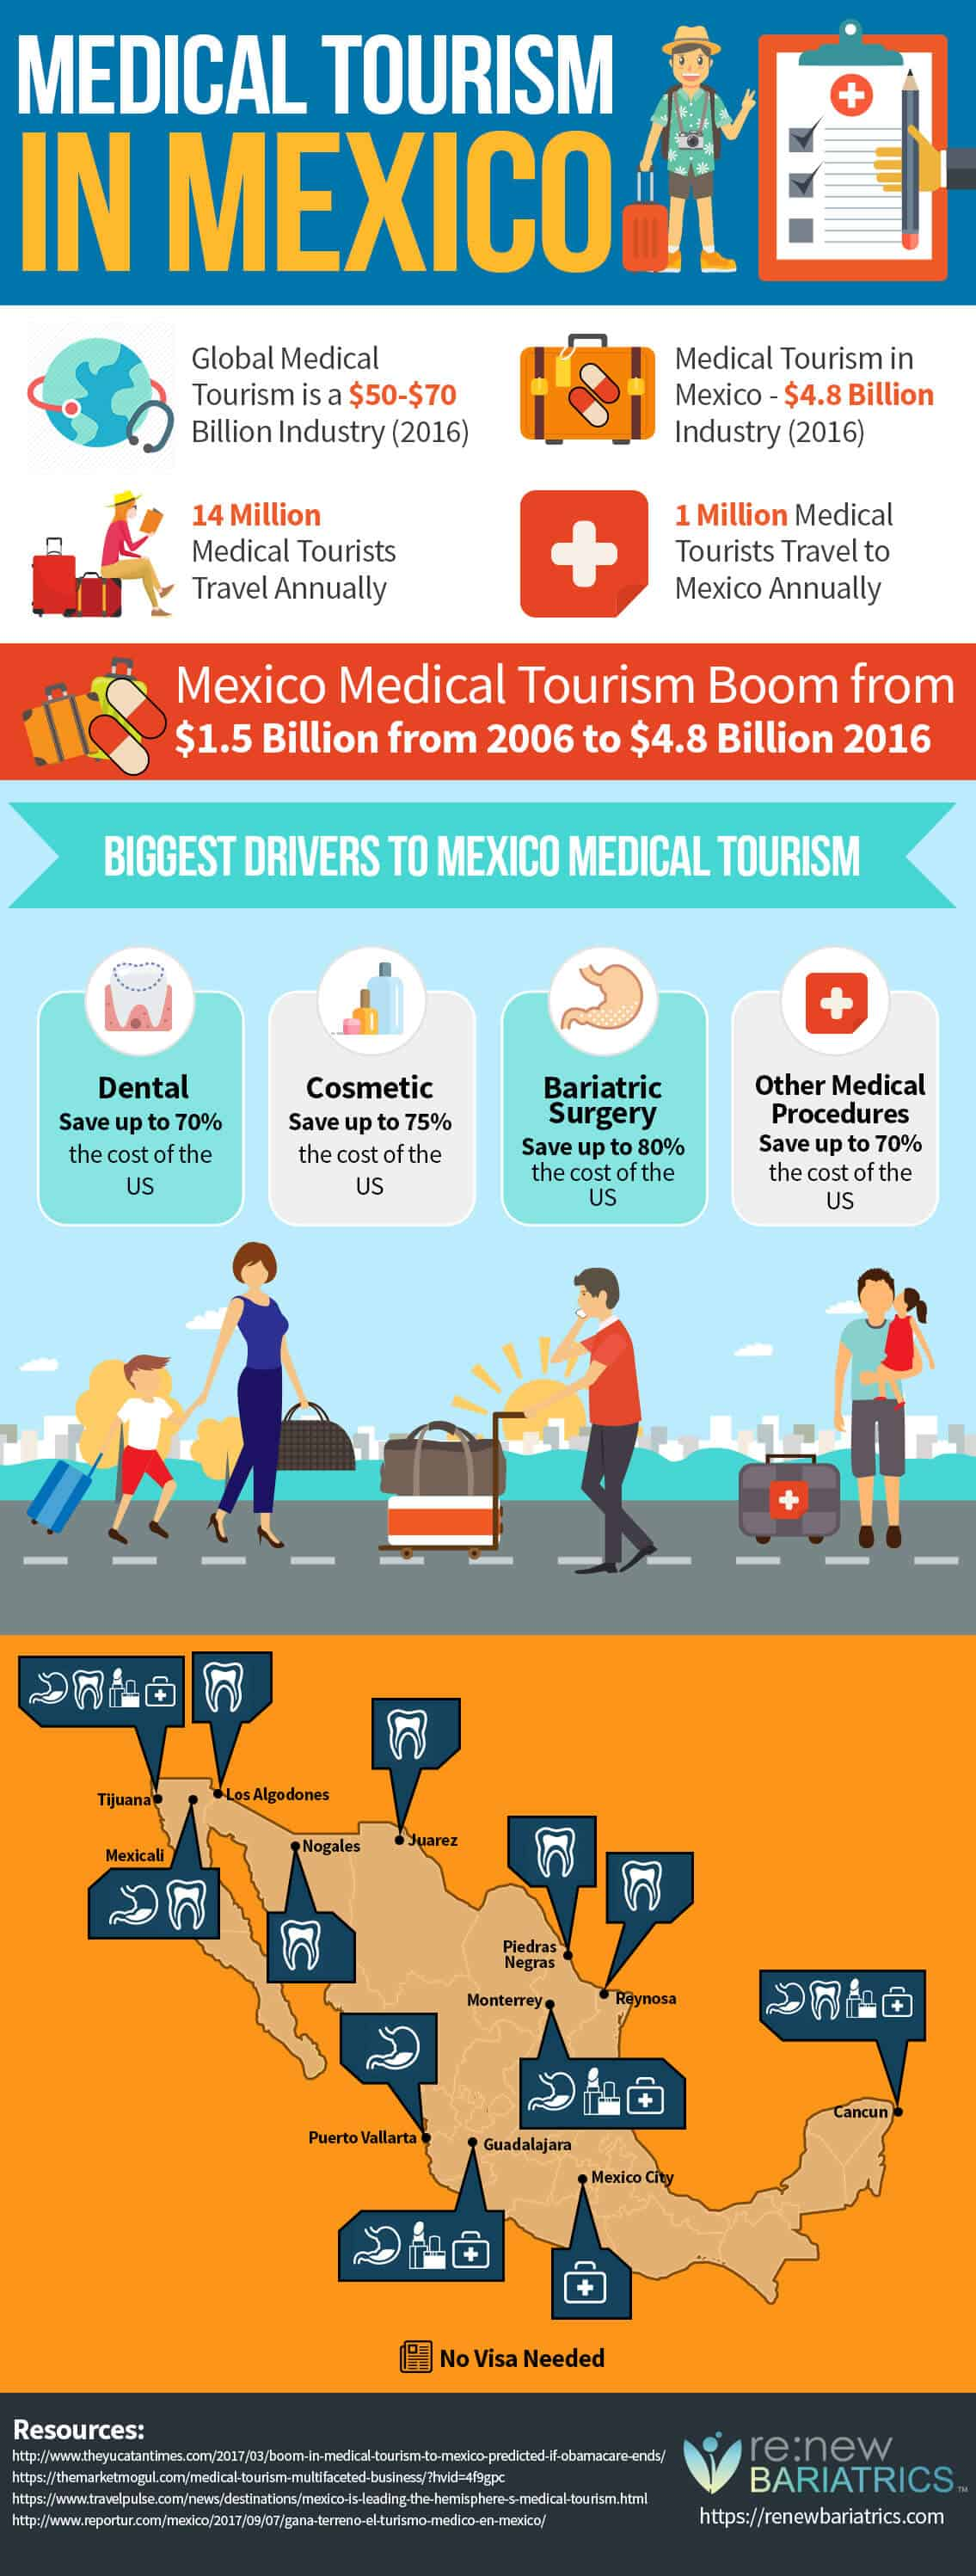 Medical Tourism in Mexico Infographic